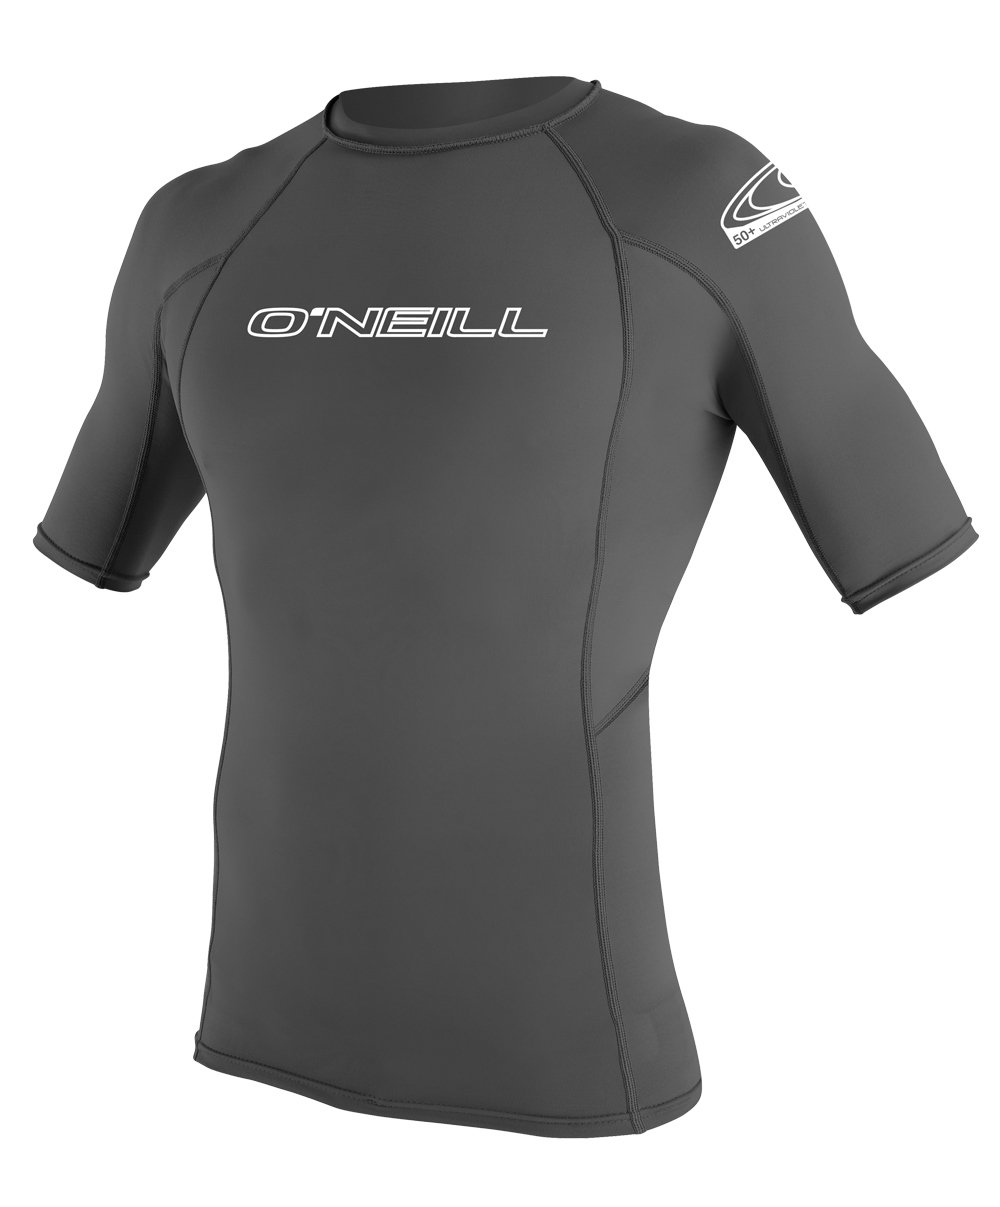 O'Neill Wetsuits Men's Basic Skins UPF 50+ Short Sleeve Rash Guard, Graphite, Medium by O'Neill Wetsuits